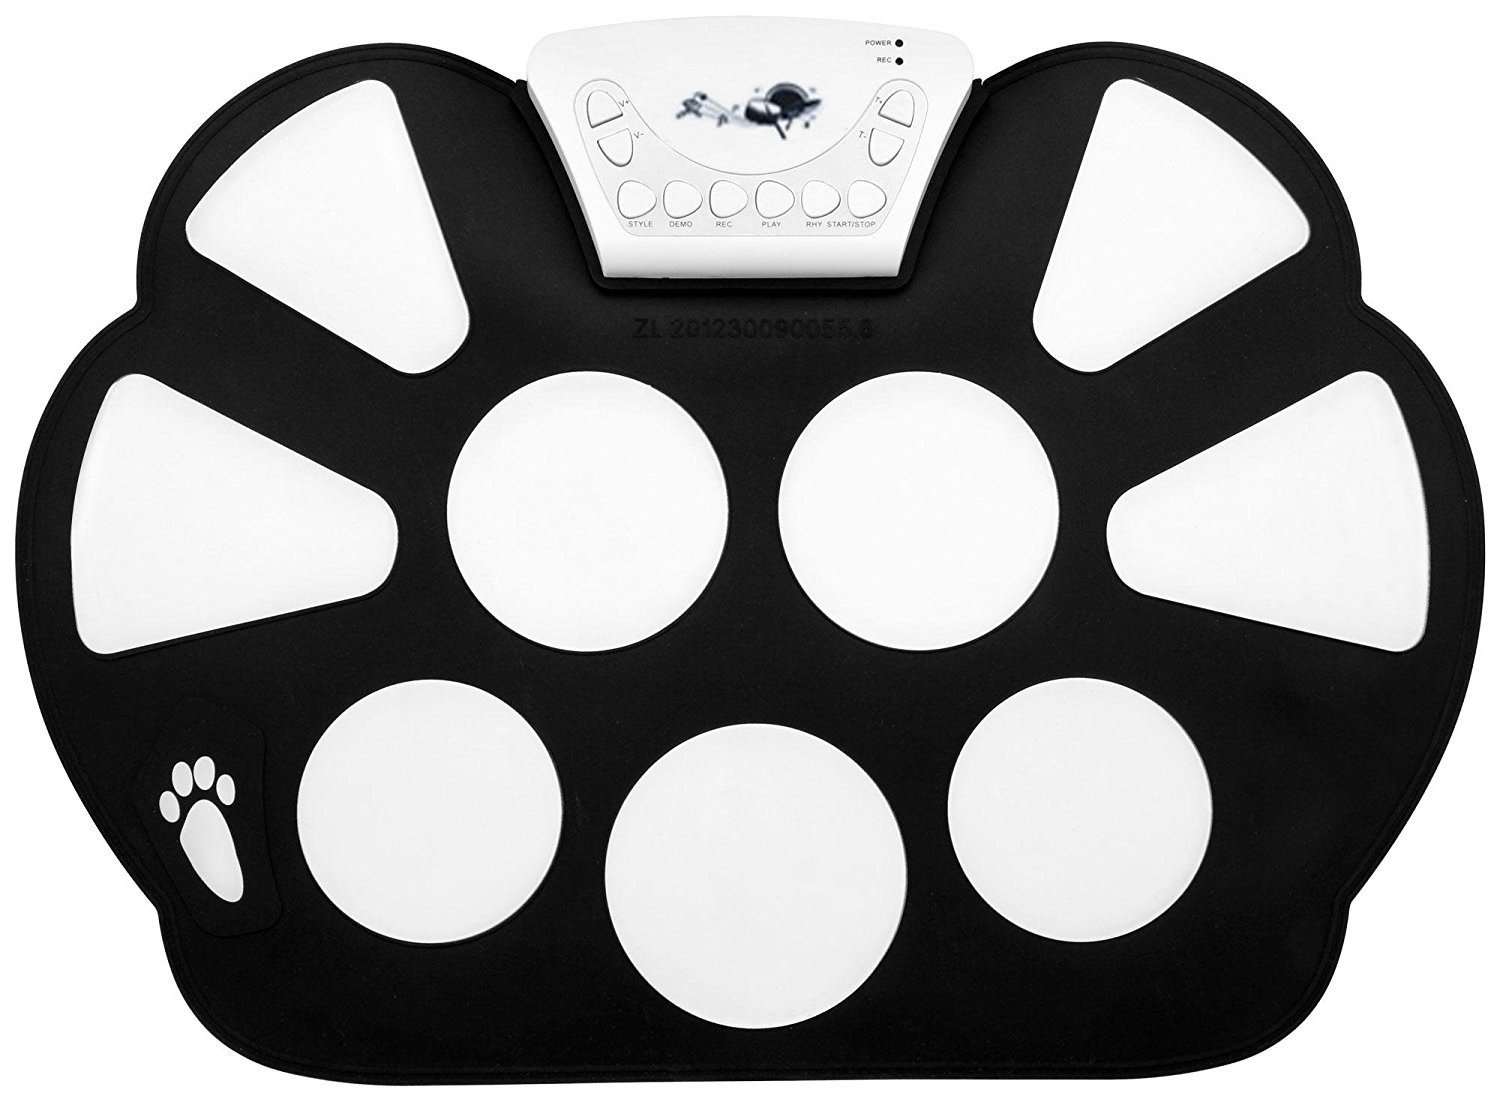 Top-Longer Portable Electronic Drum Pad Kit with Drum Sticks and Sustain Pedal for Children - Electronic Drums Pad Set Kids Gift for Christmas Day by Top-Longer